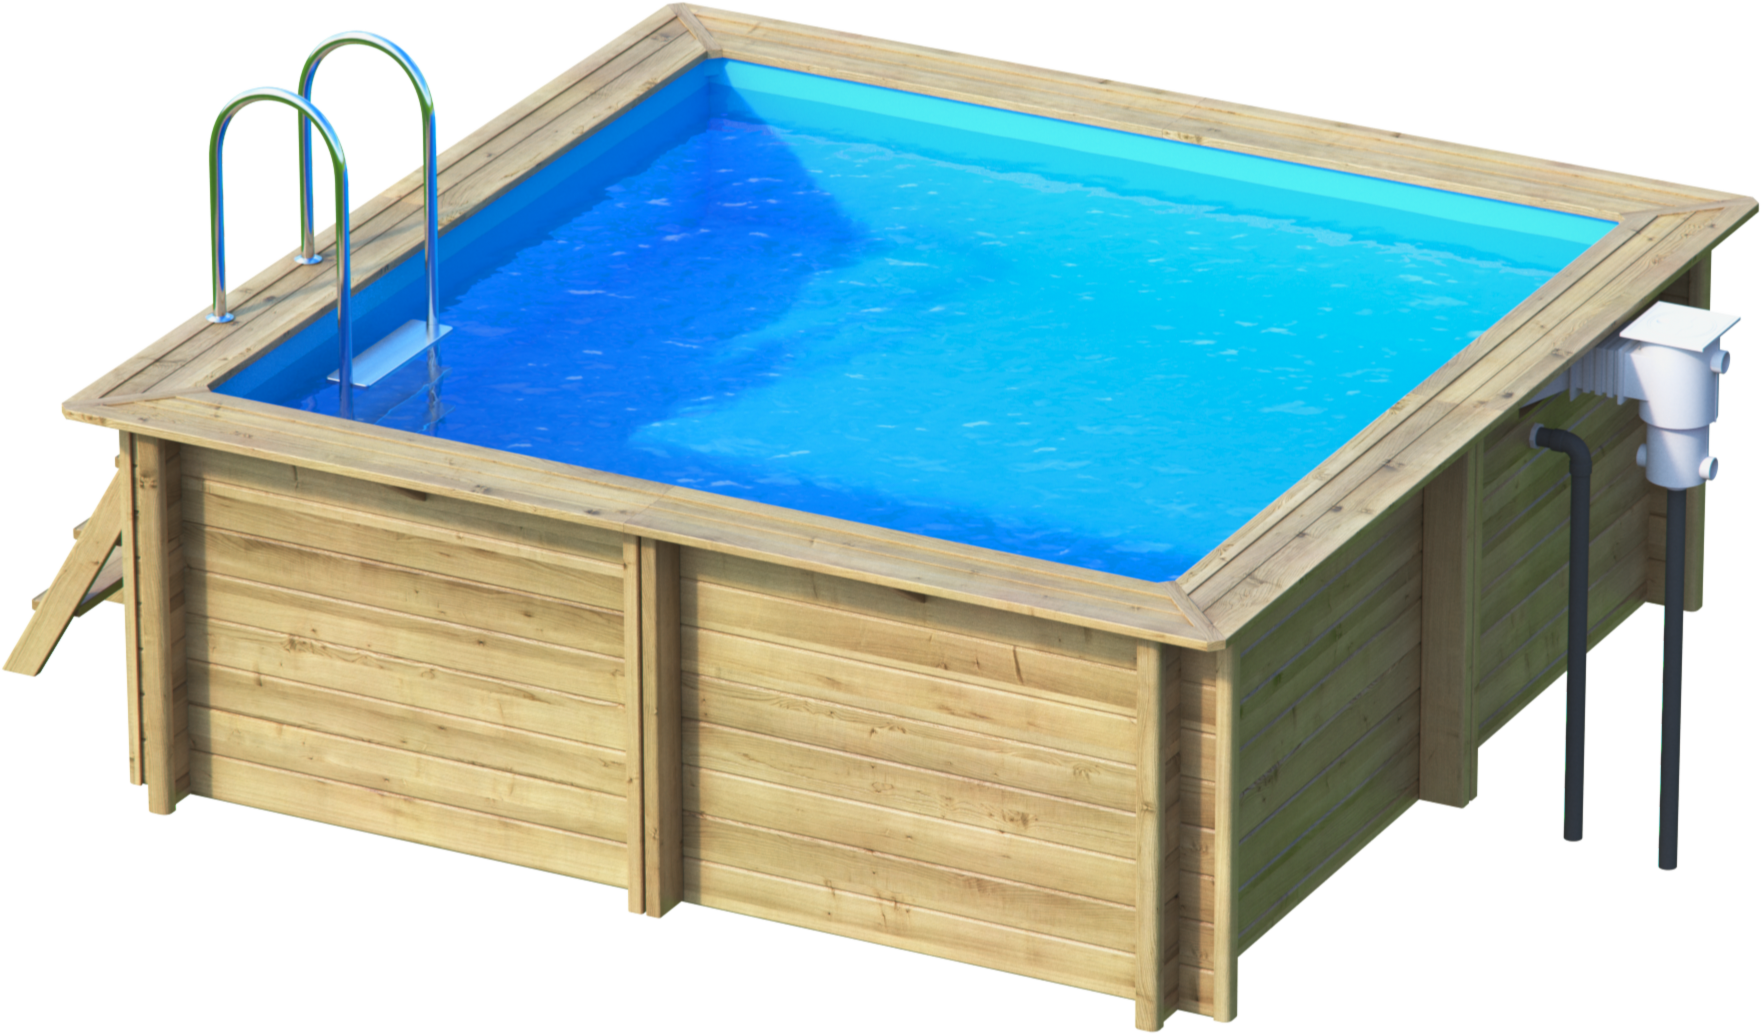 Weva carre 3x3 piscine bois weva par lpc for Piscine bois enterrable